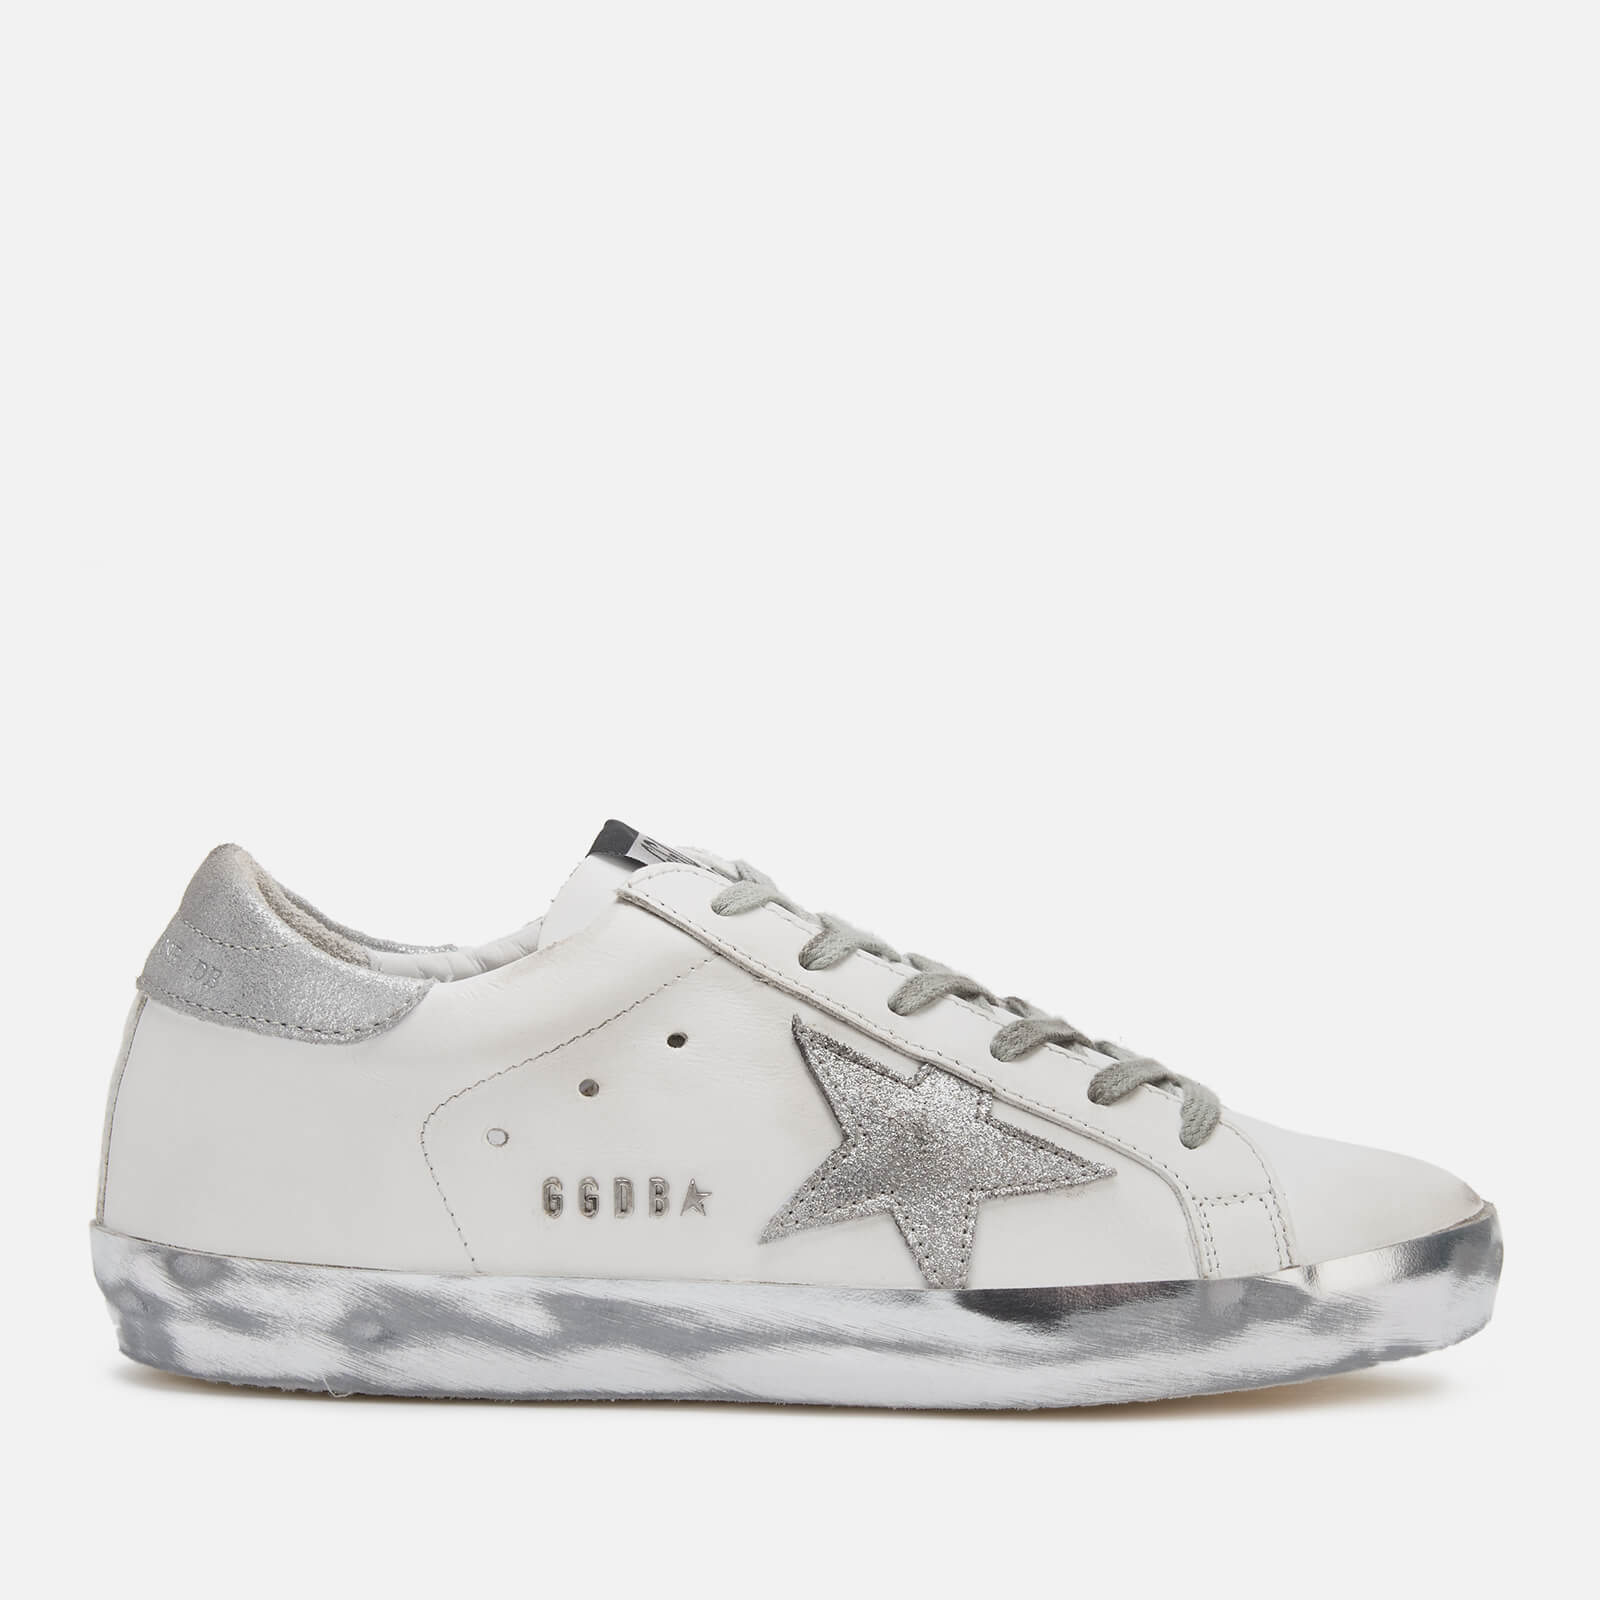 Golden Goose Deluxe Brand Women's Superstar Trainers - White/Silver Star Sparkle - UK 8